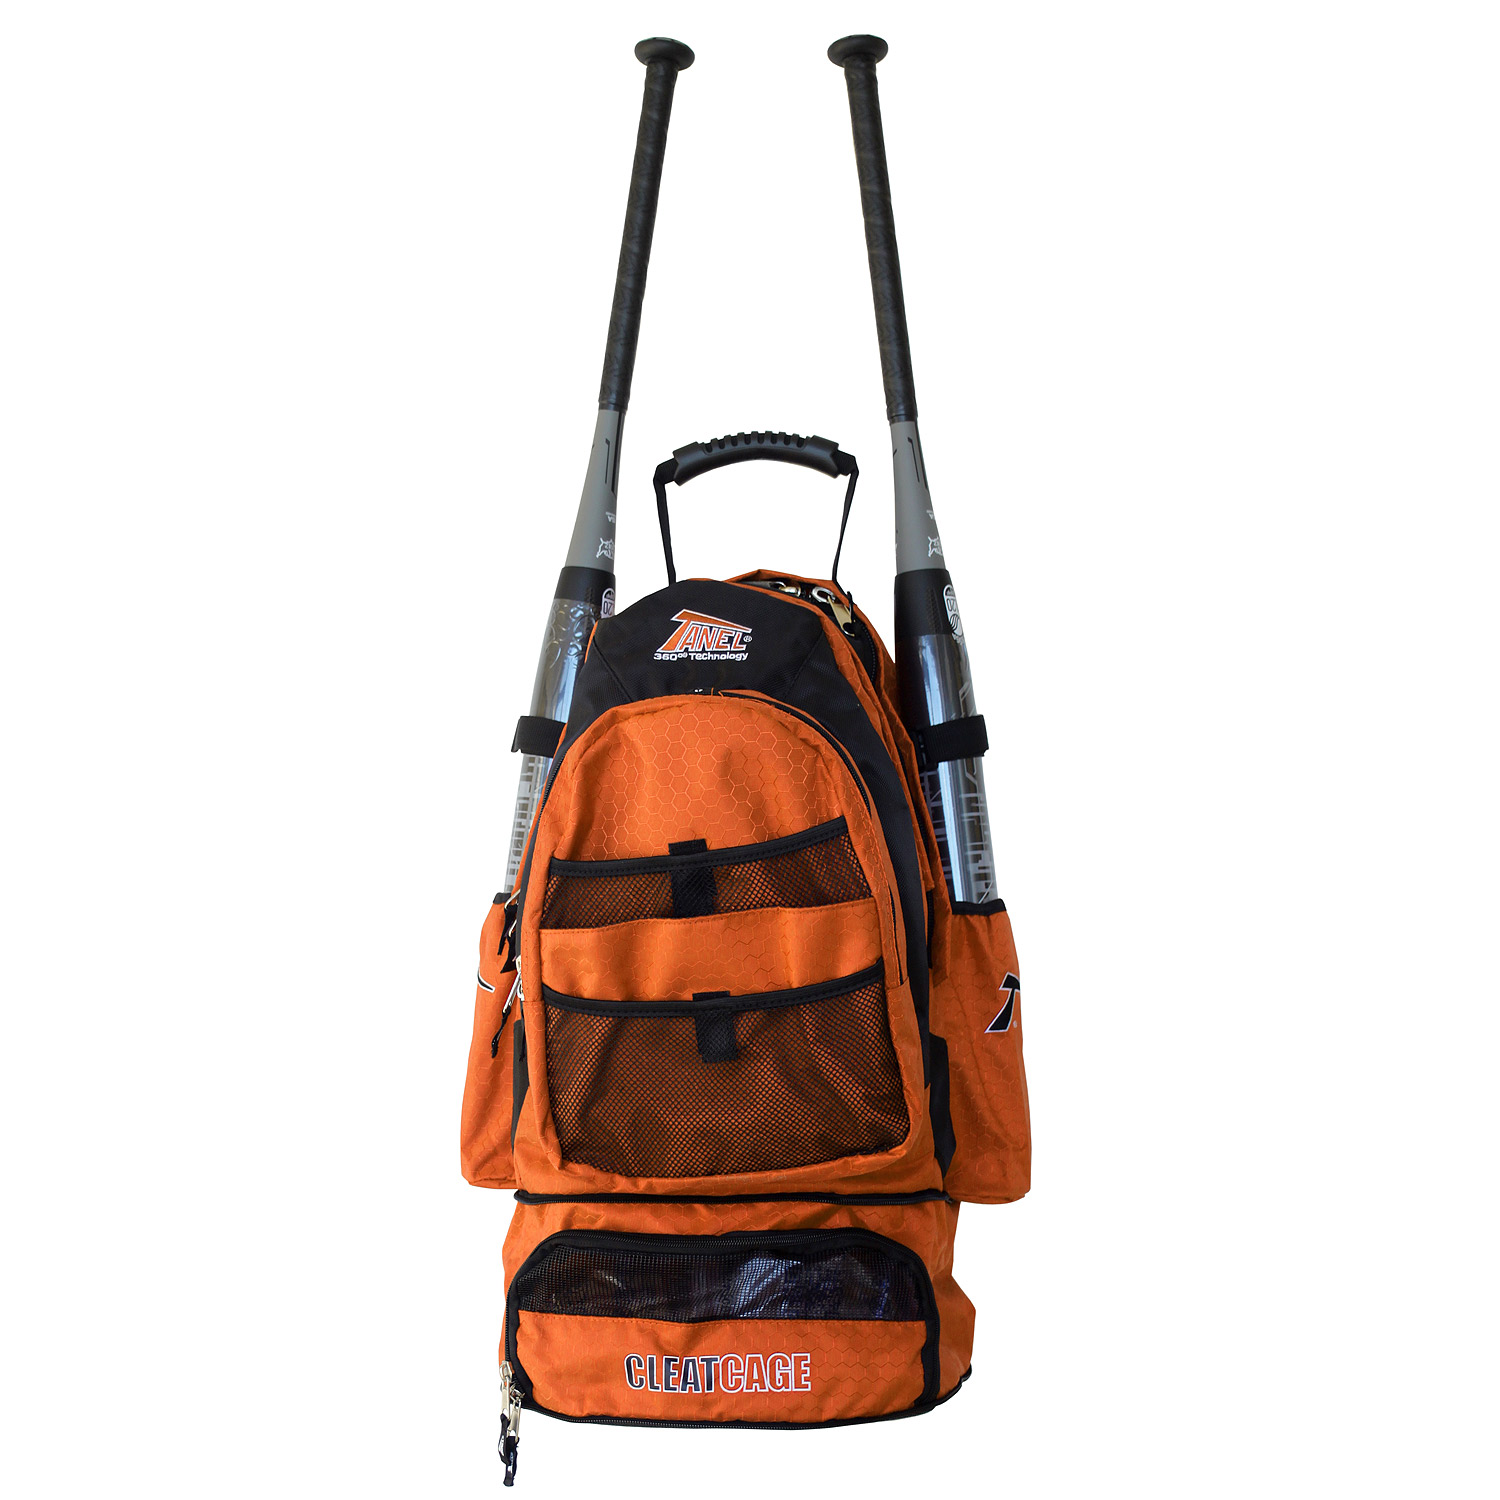 Tanel 360 BatPack Baseball/Softball Backpack Bag